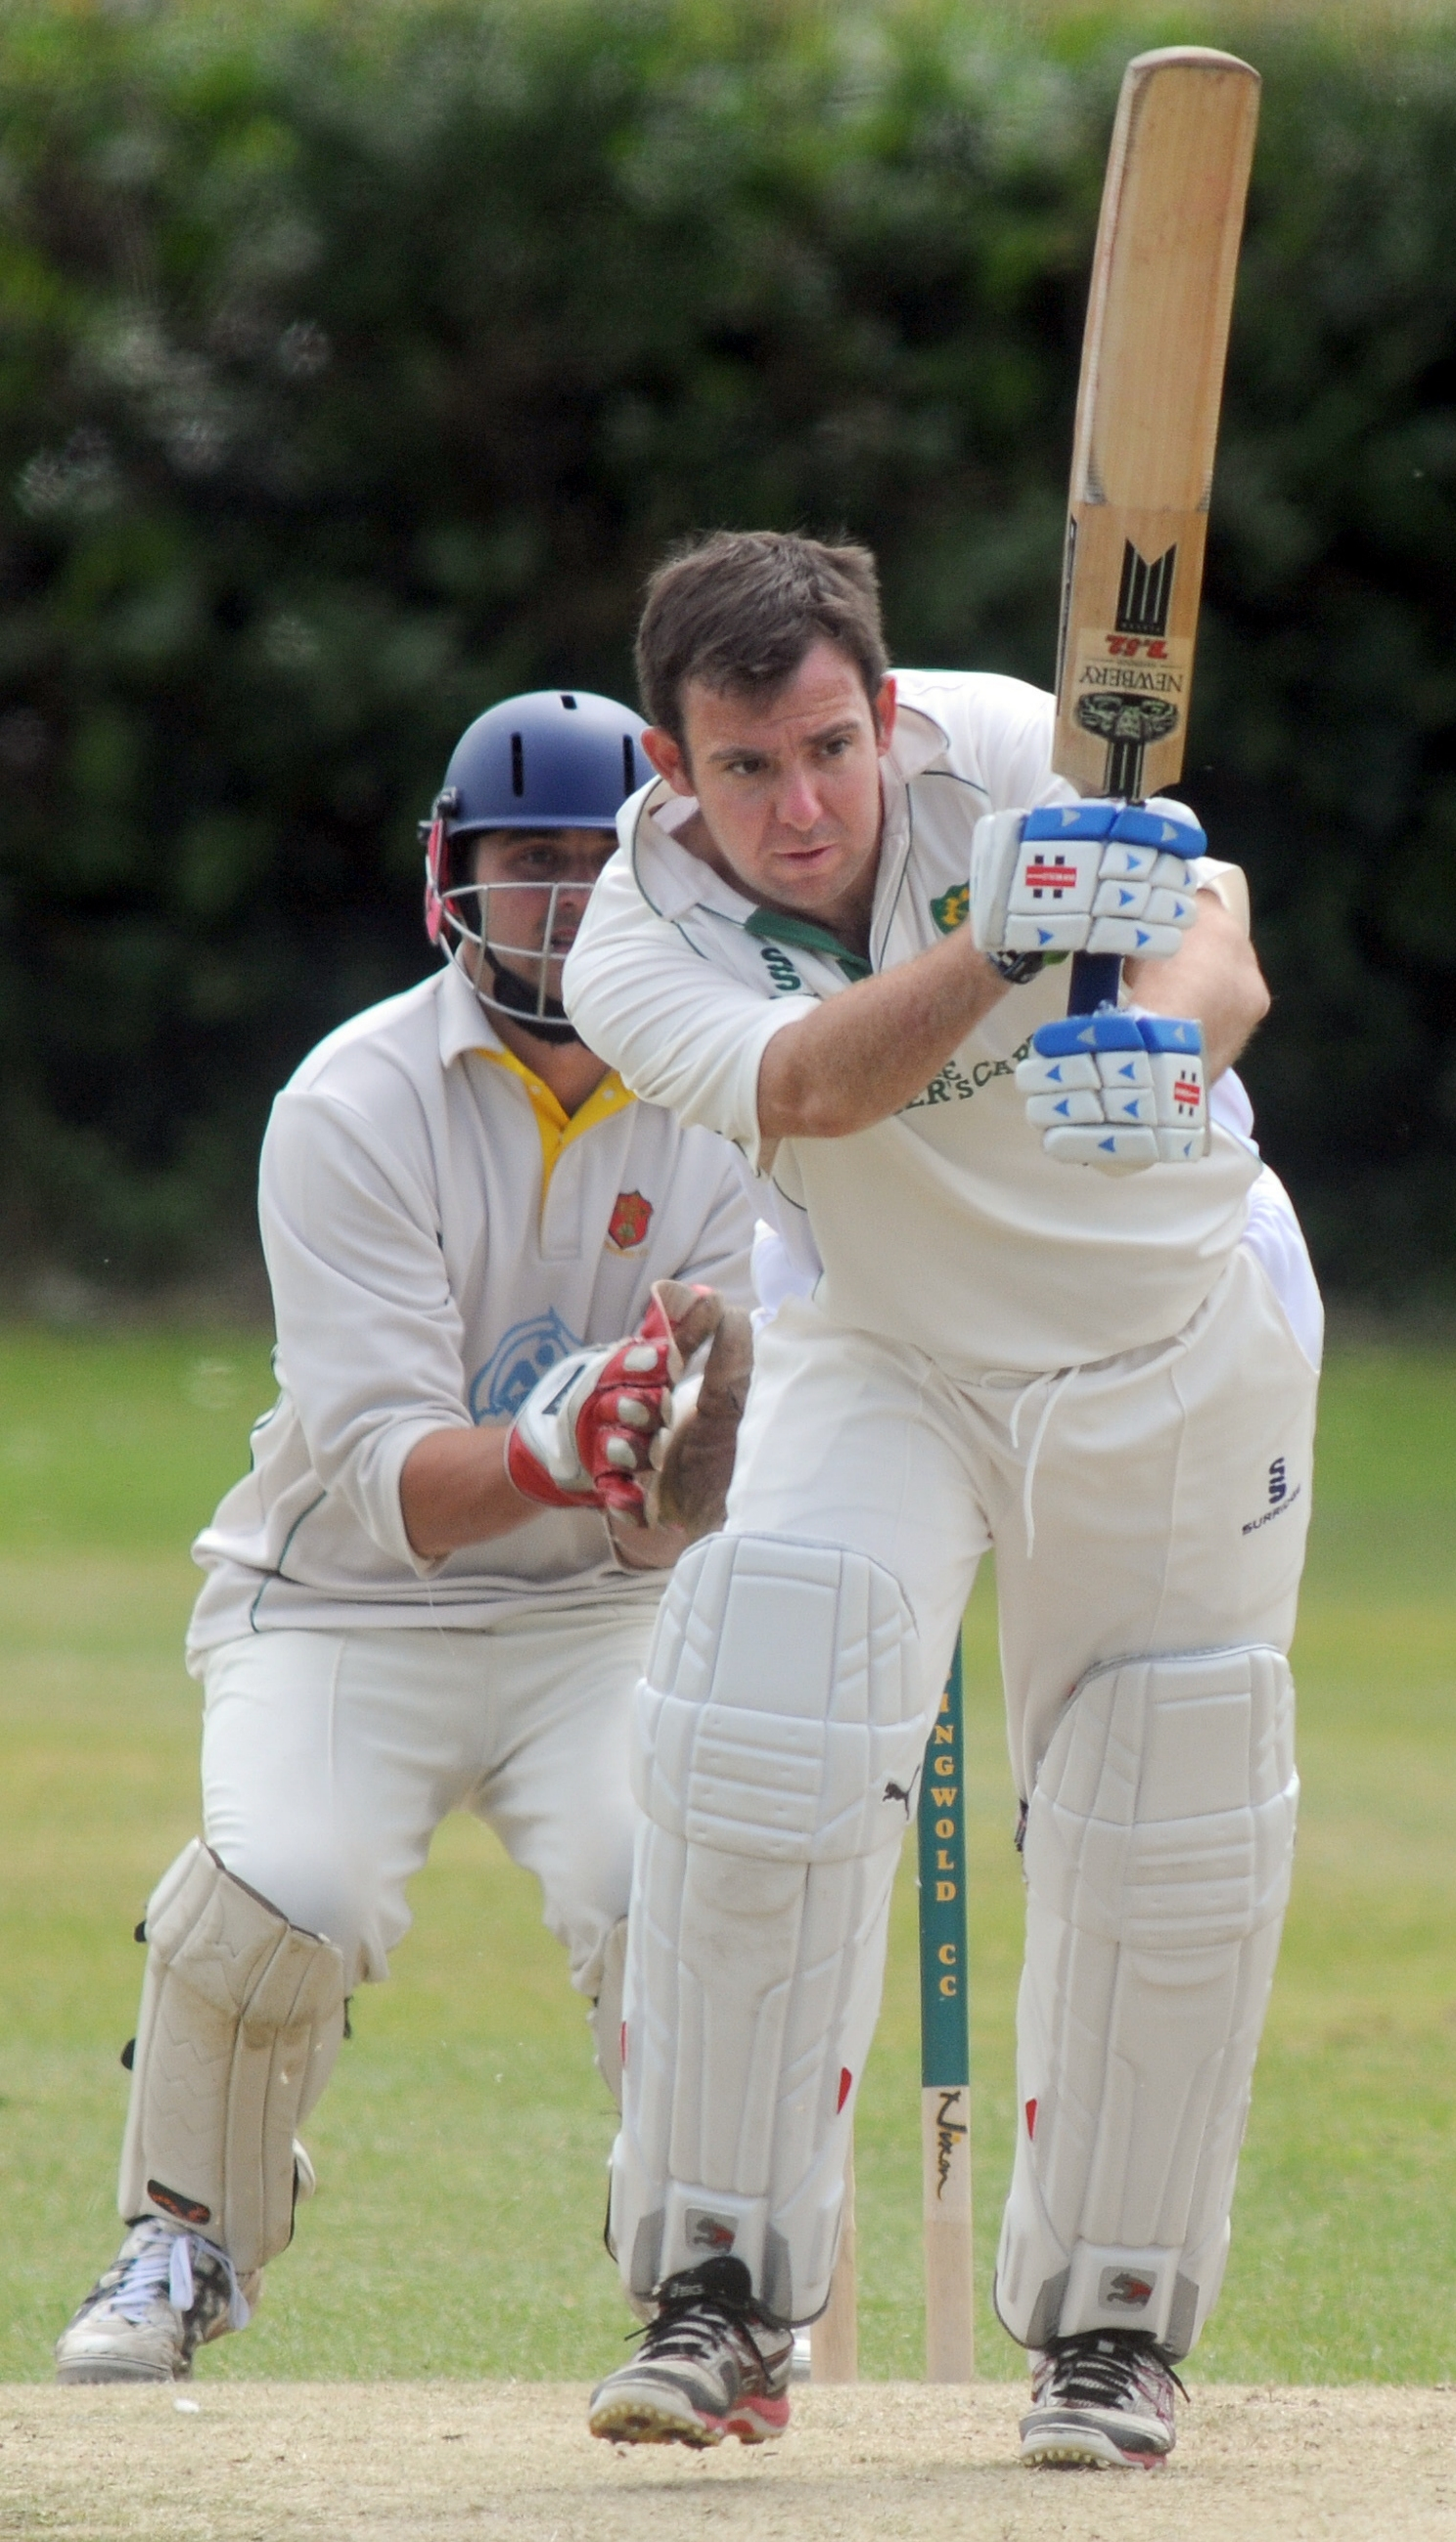 Stamford Bridge batsman Kev Murphy adds to his tally against Easingwold.